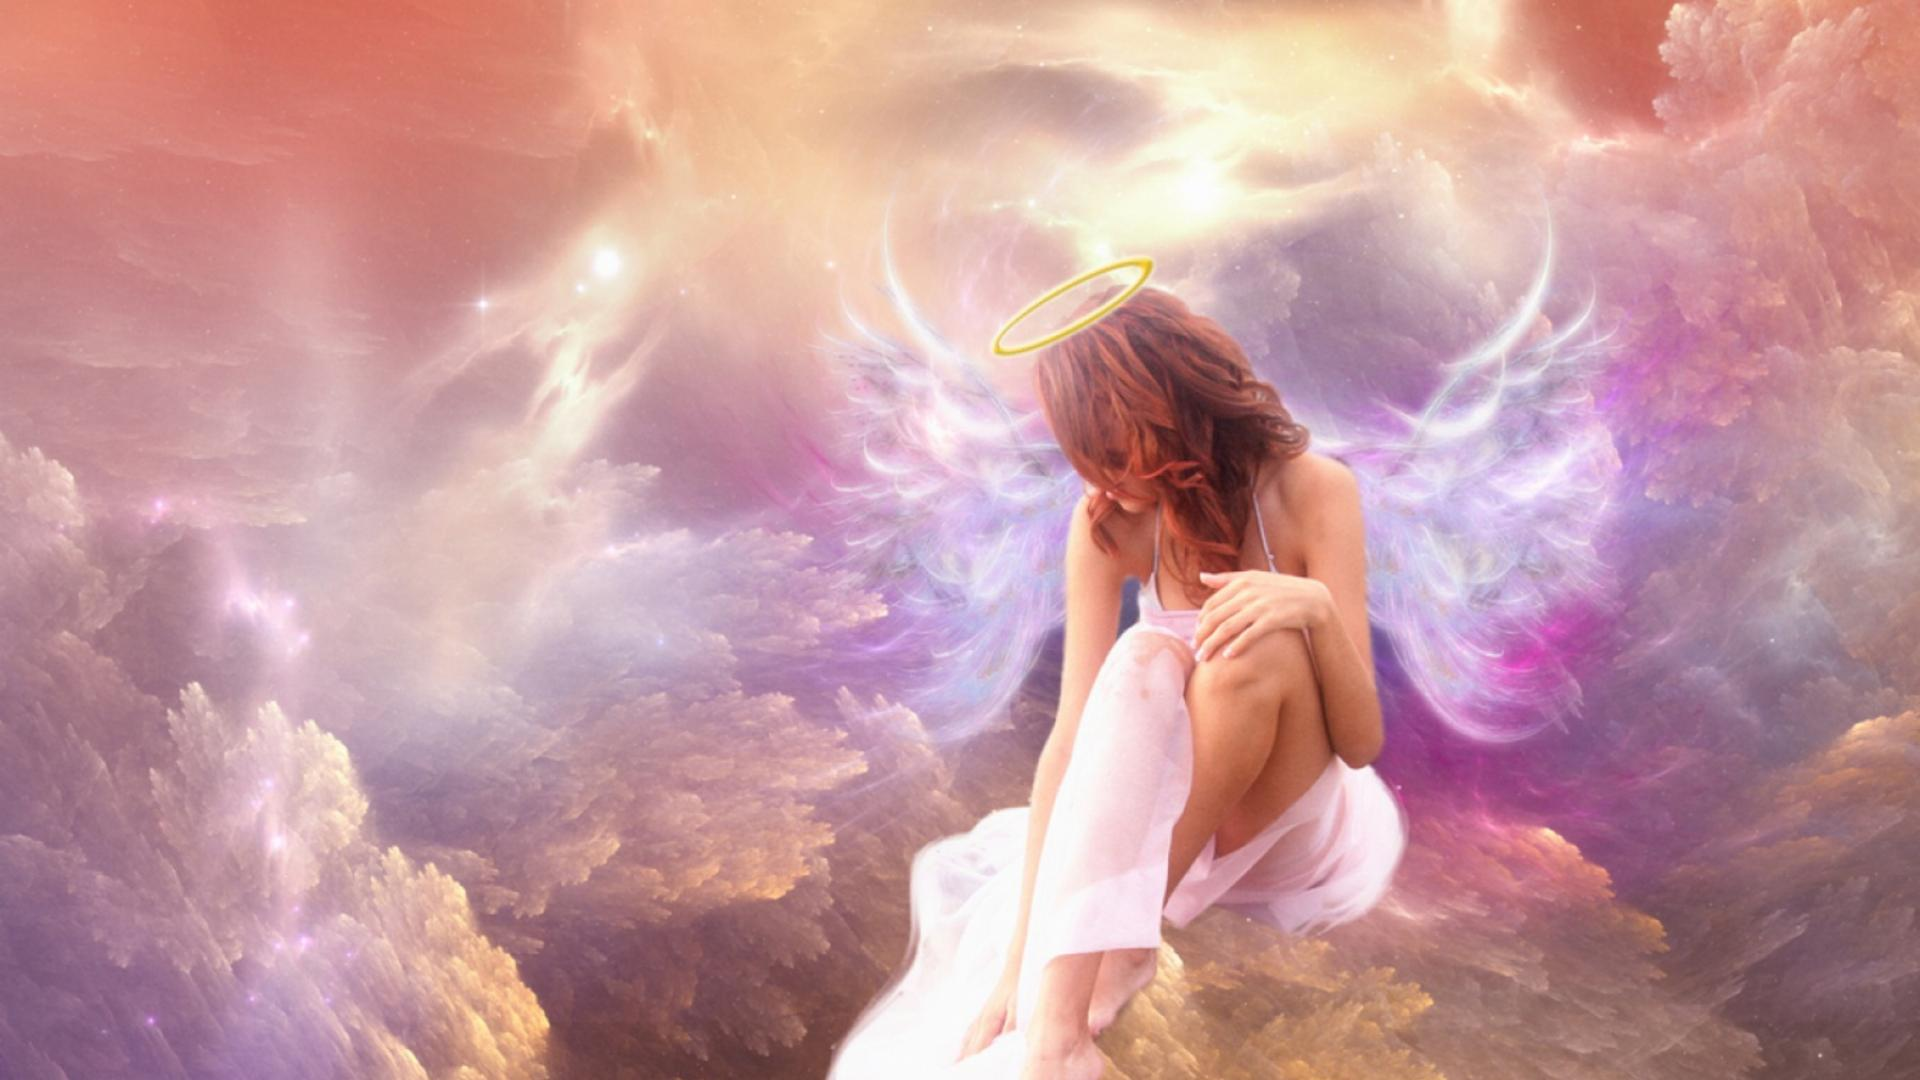 Fantasy Angel Wallpaper 19202151080 122257 HD Wallpaper Res 1920x1080